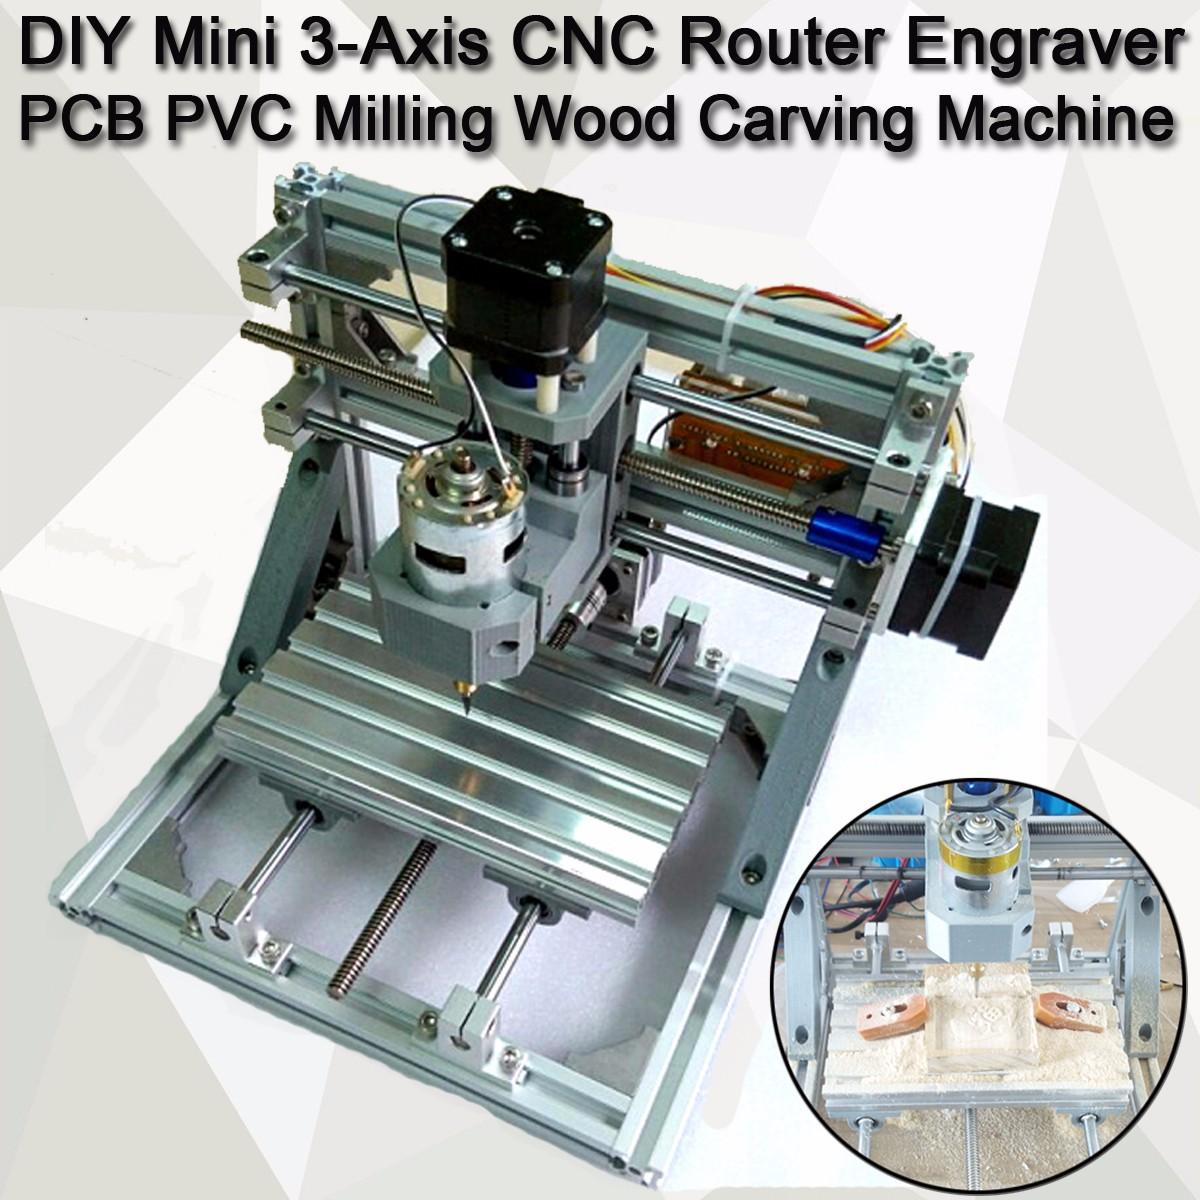 DIY Mini 3 Axis Router CNC 1610 GRBL Control CNC Machine Engraver PCB PVC Milling Wood Carving Machine working area 16x10.5x3cm cnc 2030 cnc wood router engraver 4 axis mini cnc milling machine with parallel port